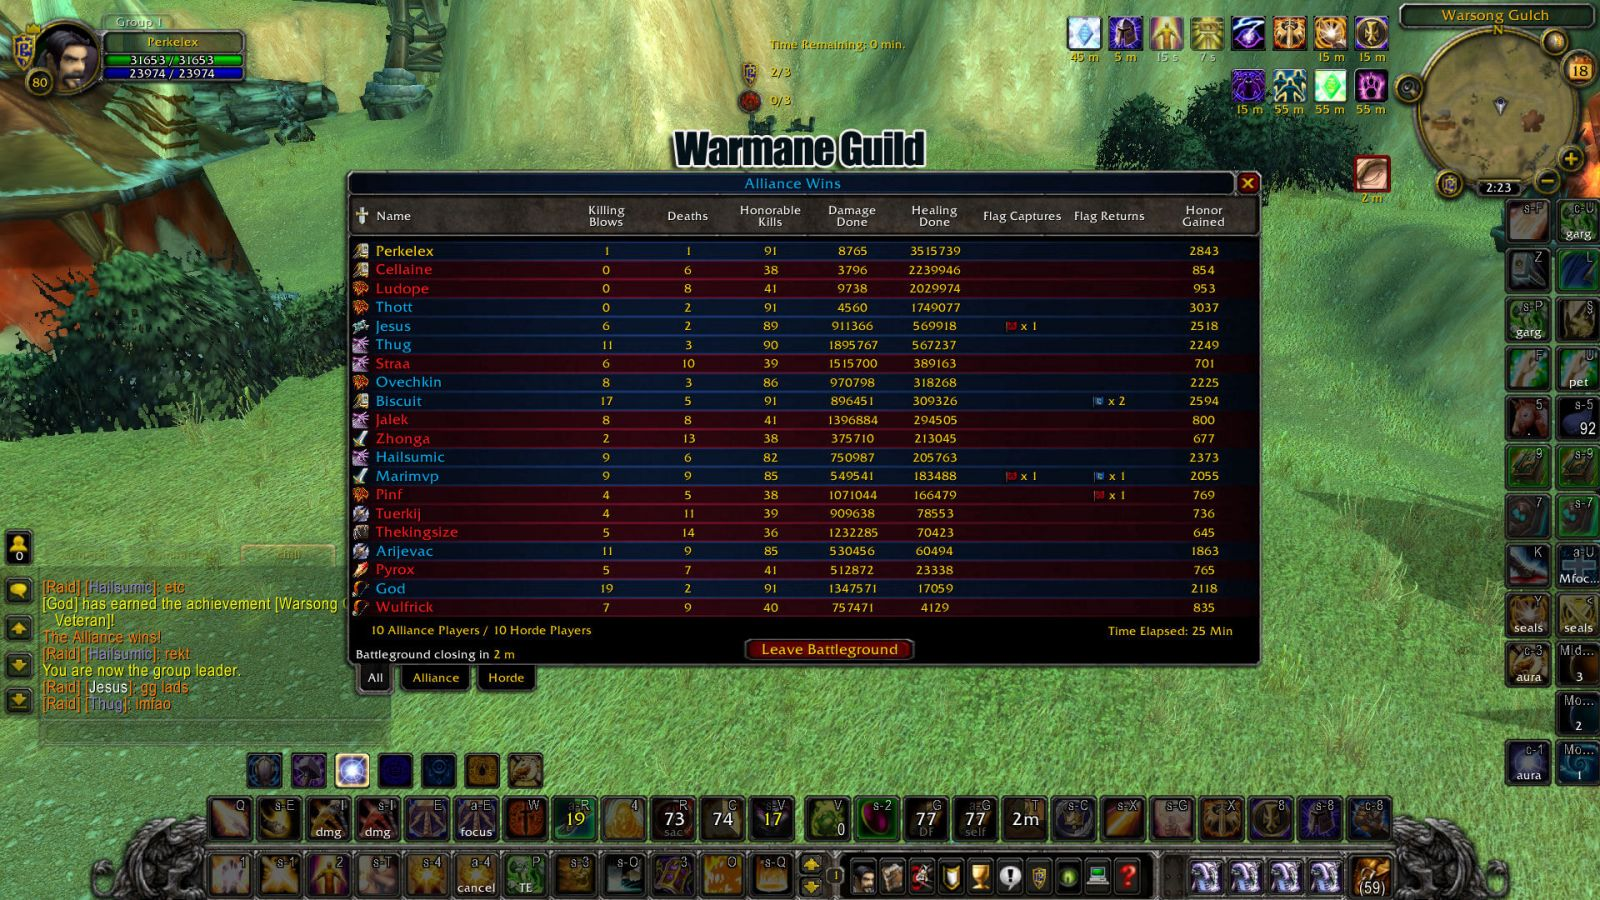 Warmane Guild